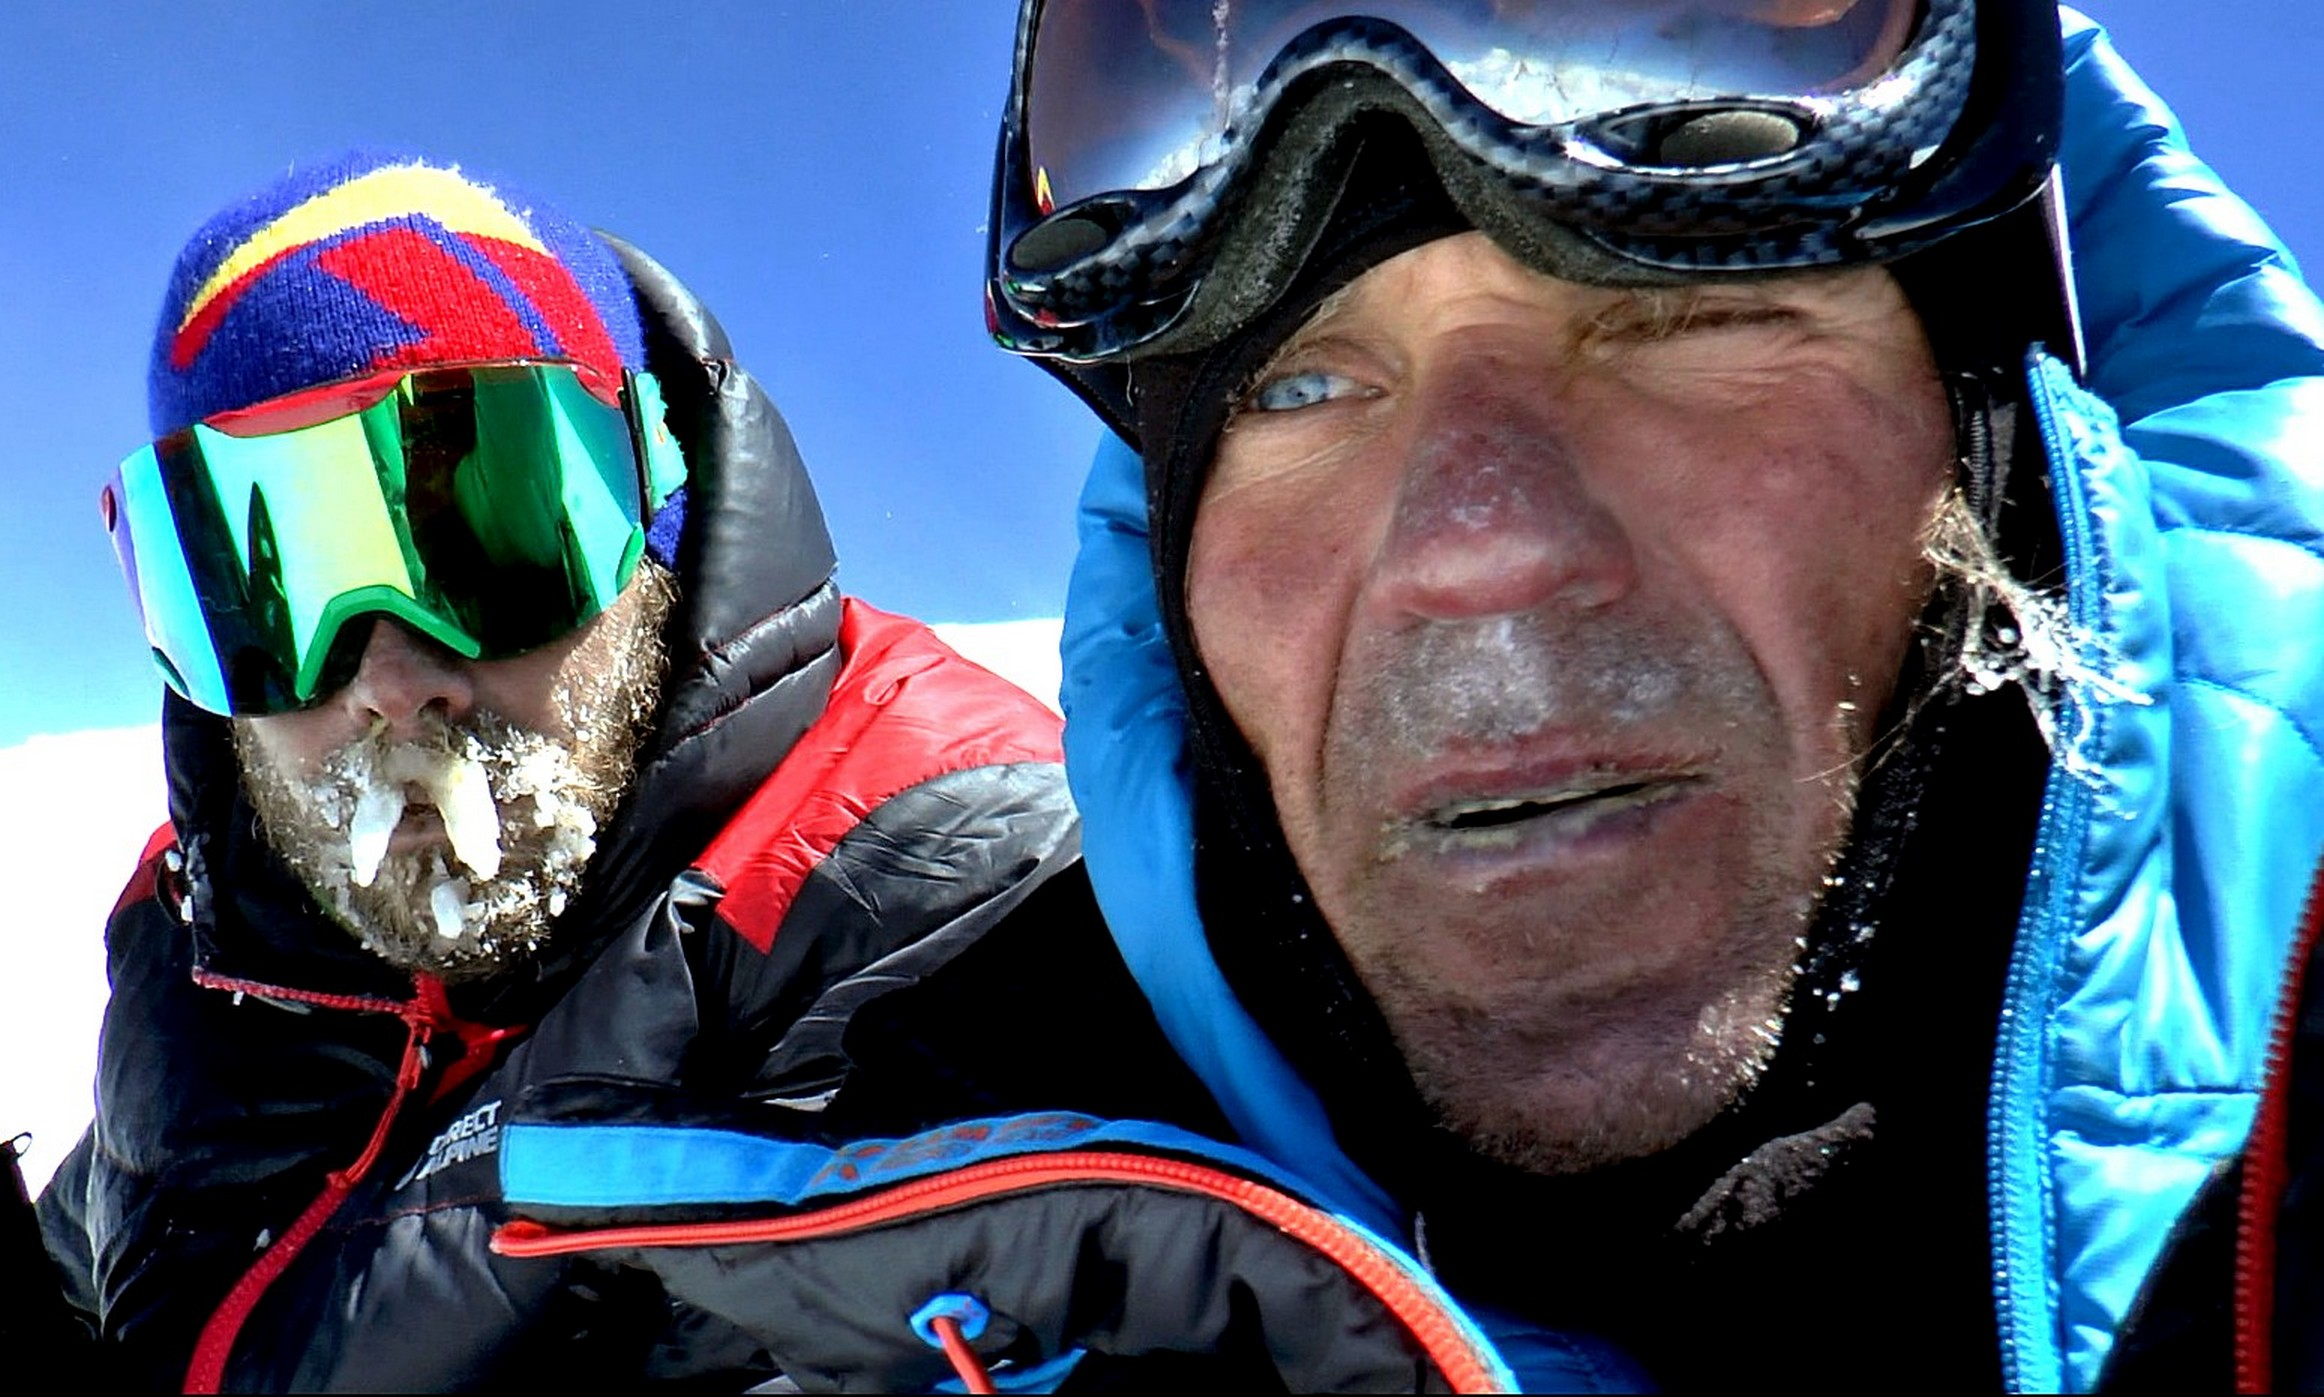 Hak, left, and Holecek, shattered on the summit. [Photo] Marek Holecek